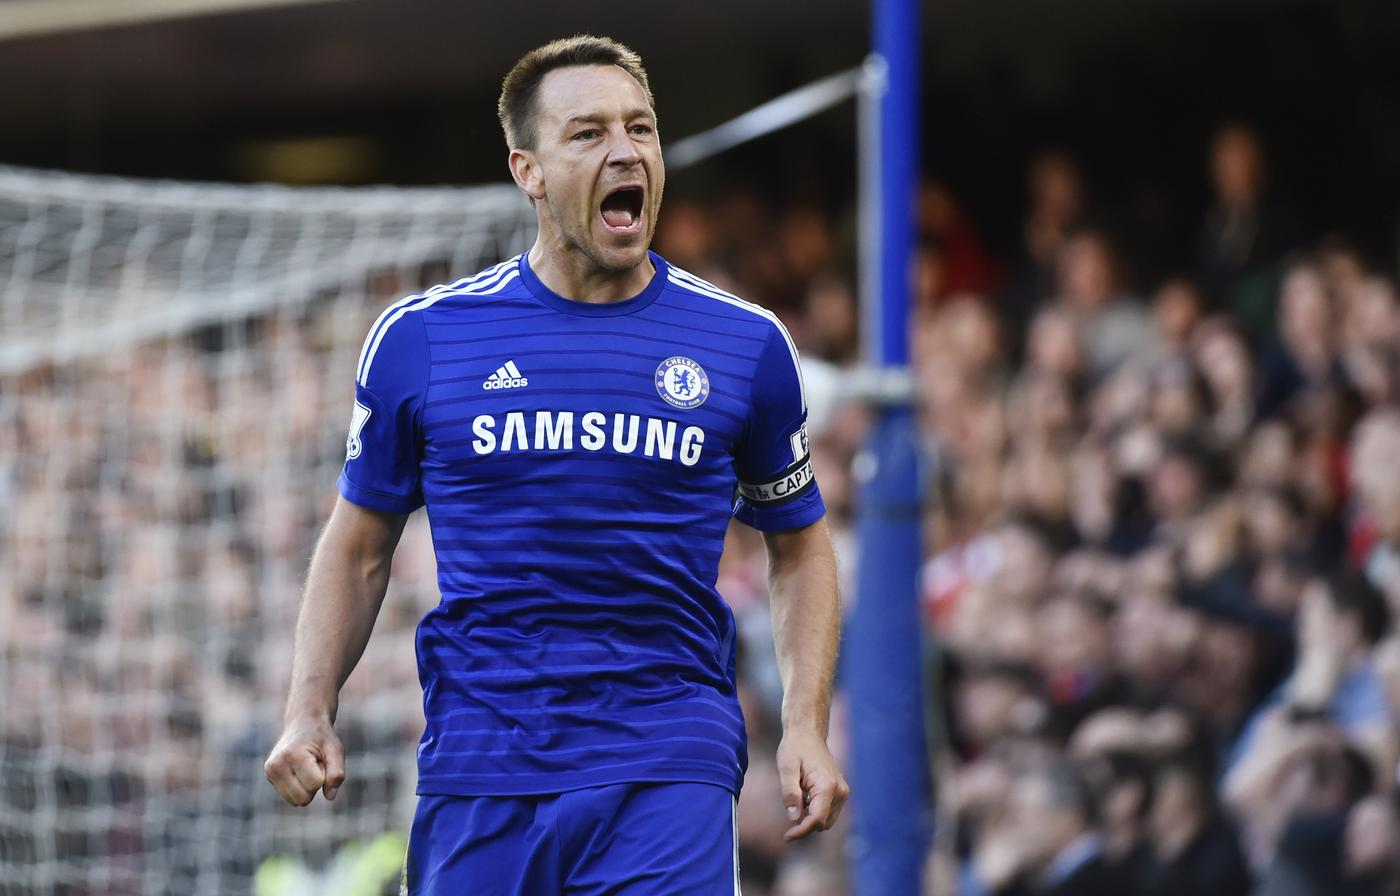 Football: Chelsea's John Terry reacts Toby Melville/Reuters